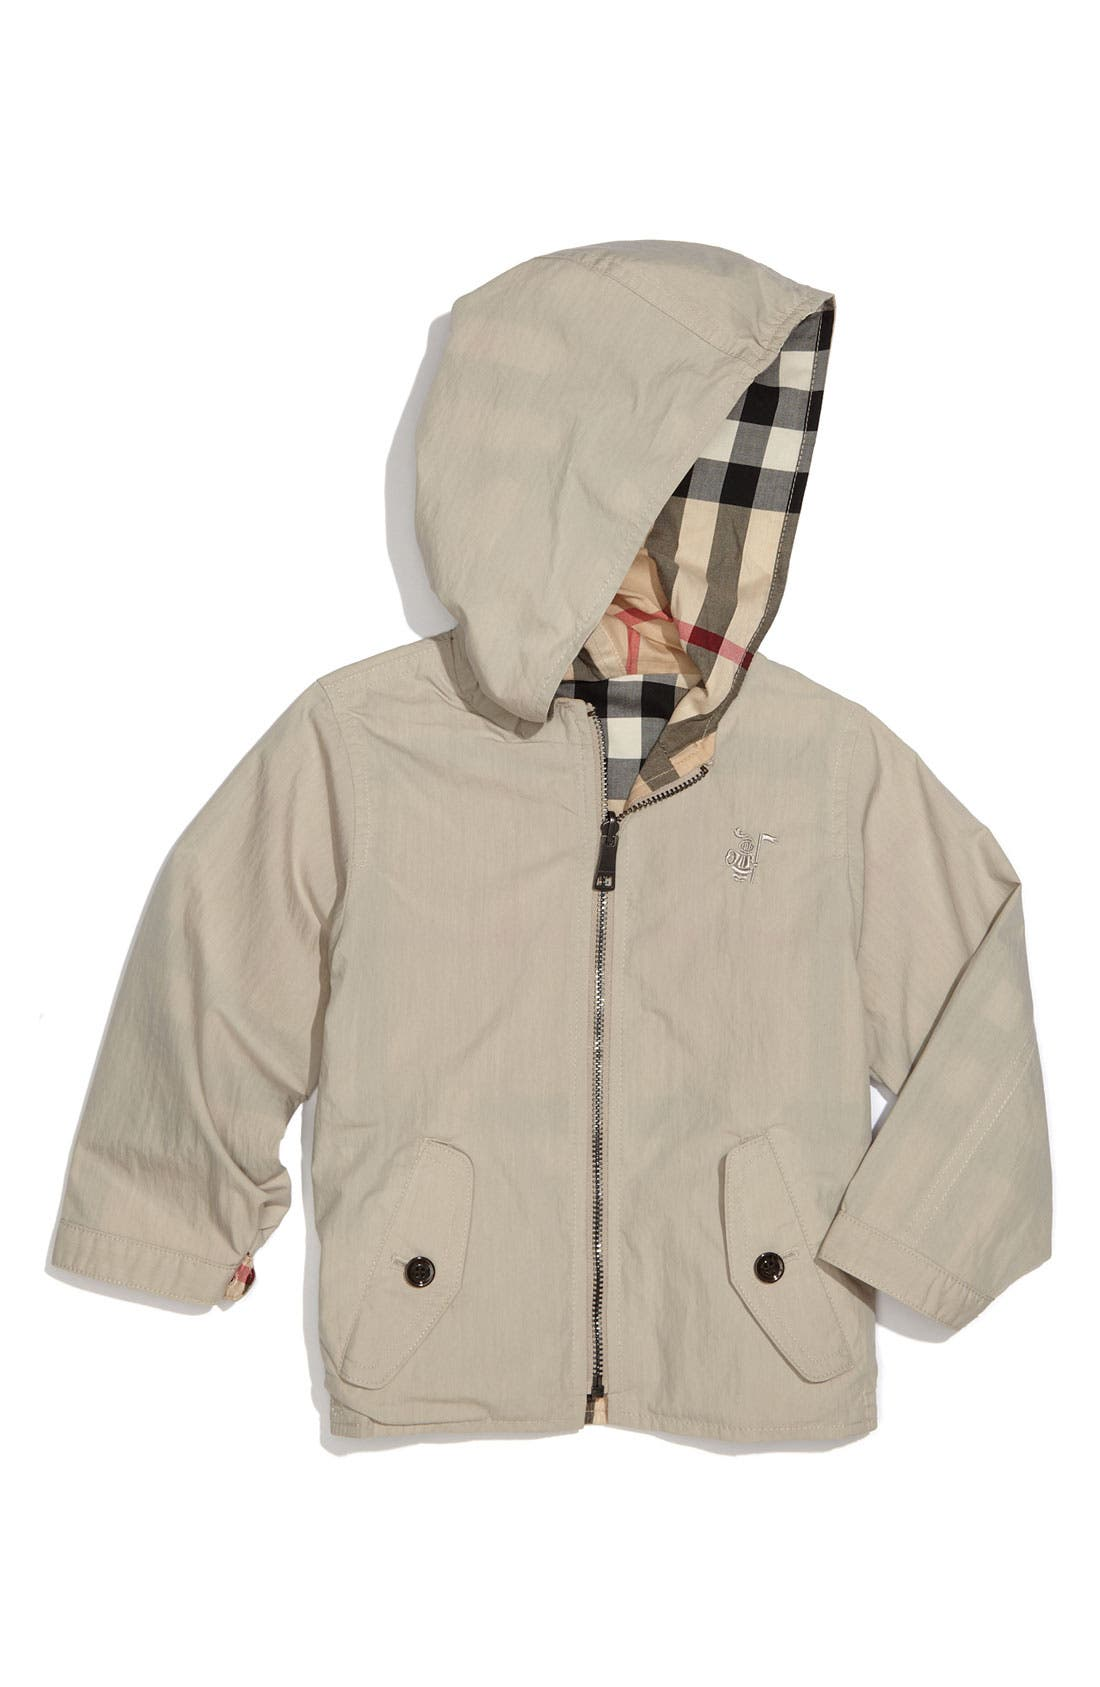 Main Image - Burberry Reversible Jacket (Toddler)